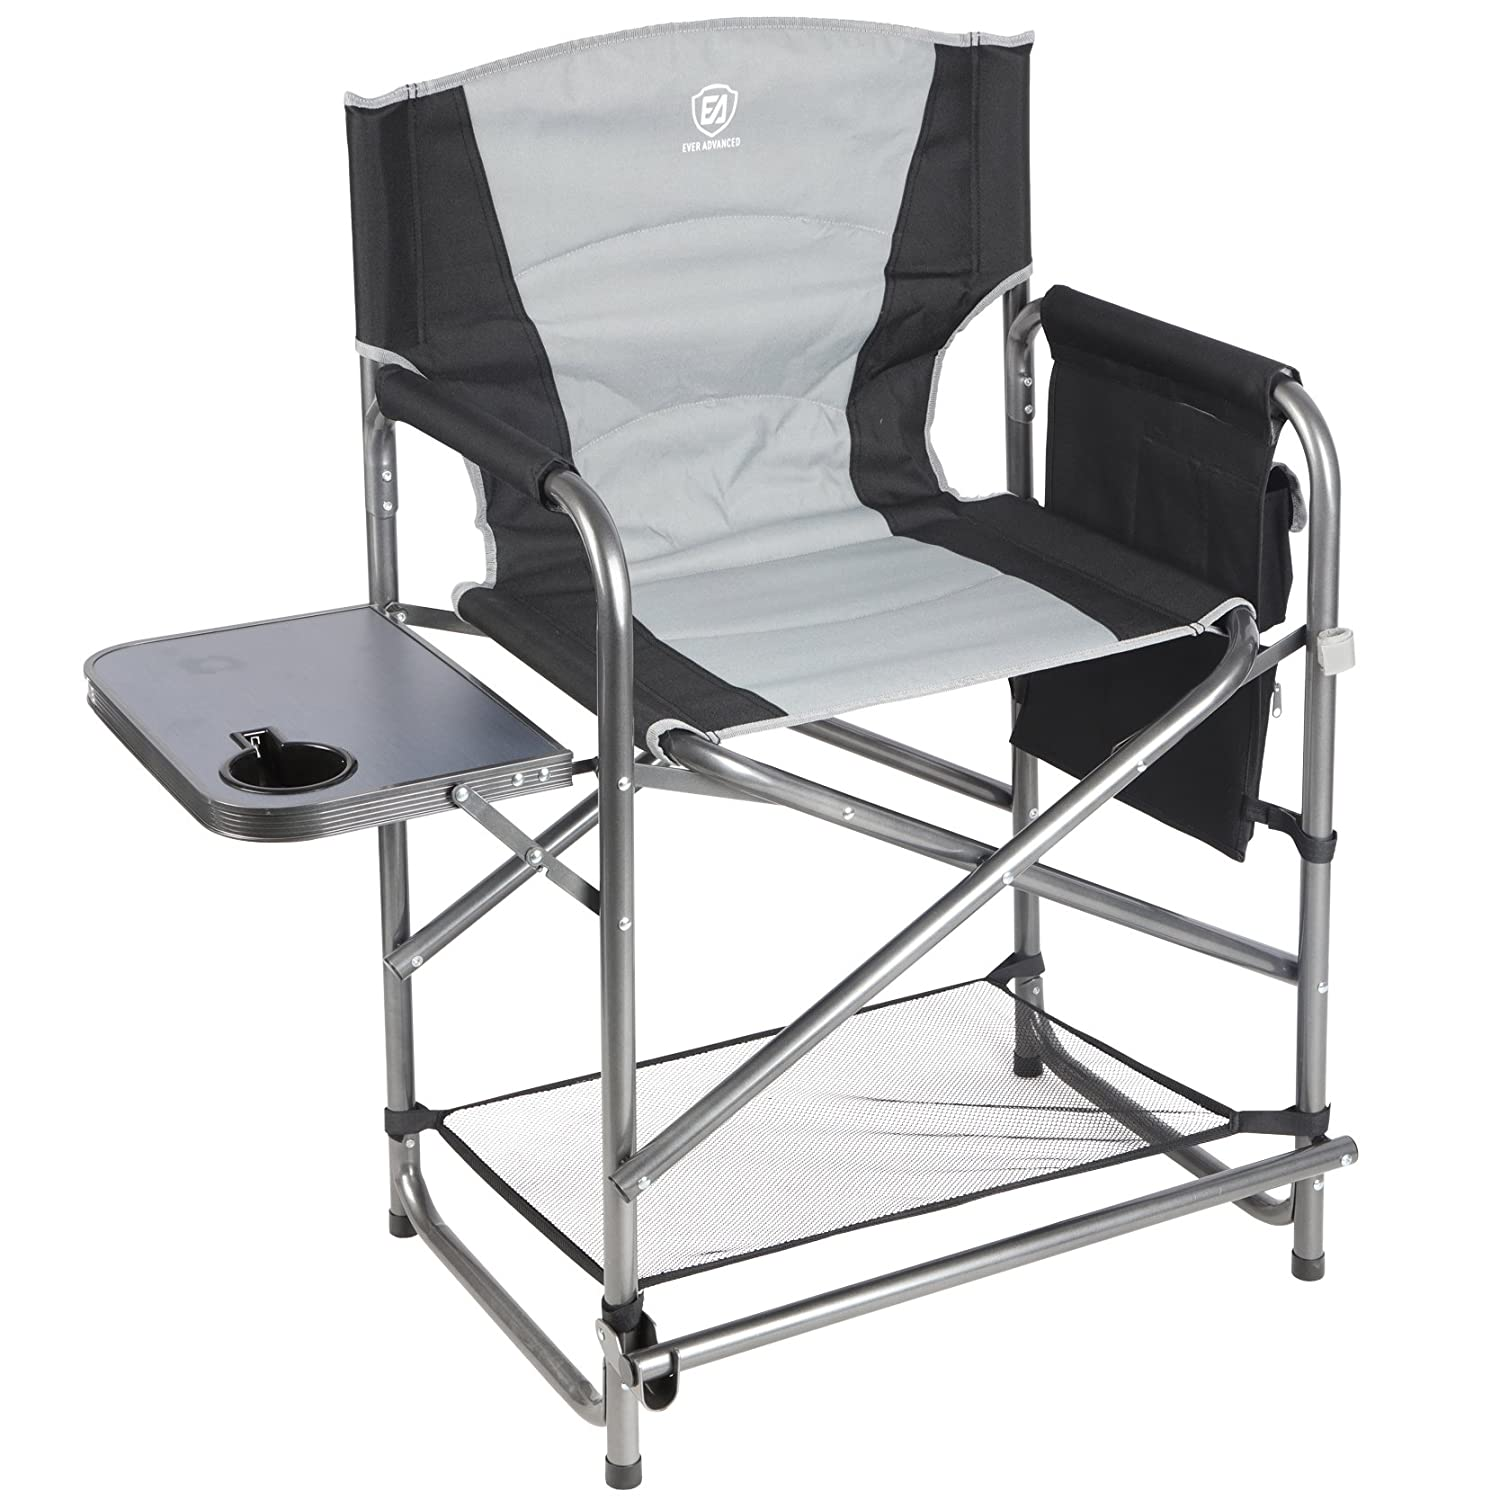 EVER ADVANCED Full Back Aluminum Folding Directors Chair with Side Table and Storage Pouch Heavy Duty 300LBS HENG FENG